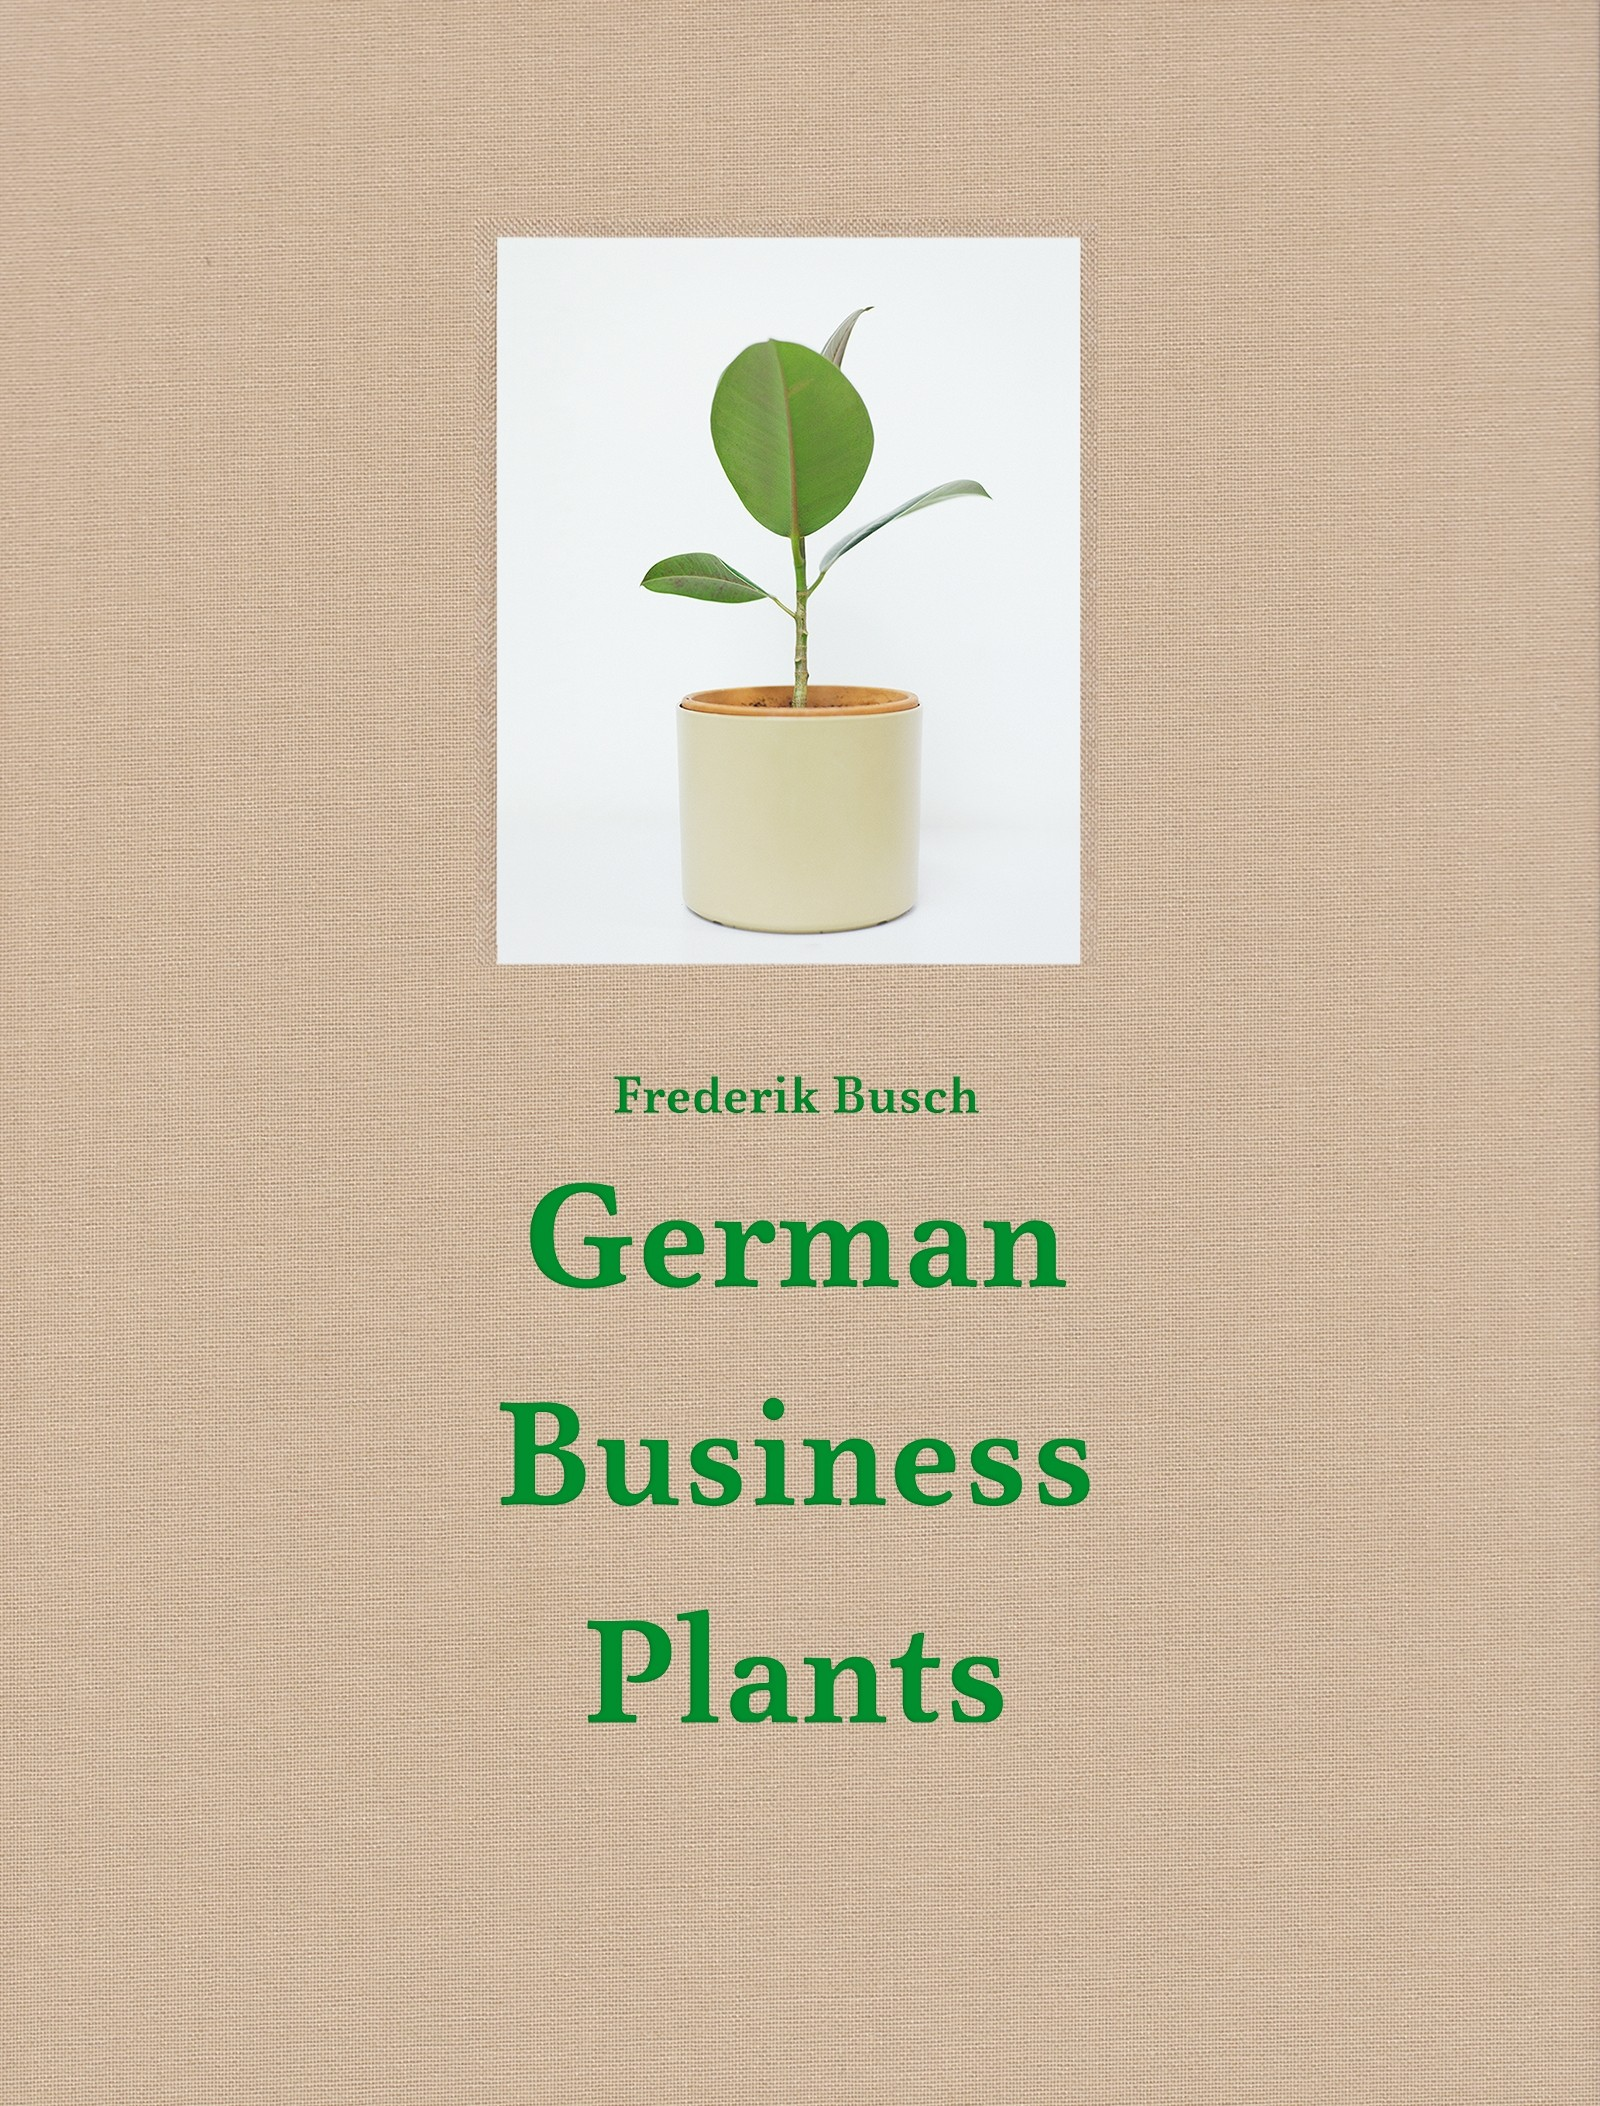 Frederik Busch COLLECTOR'S EDITION: German Business Plants